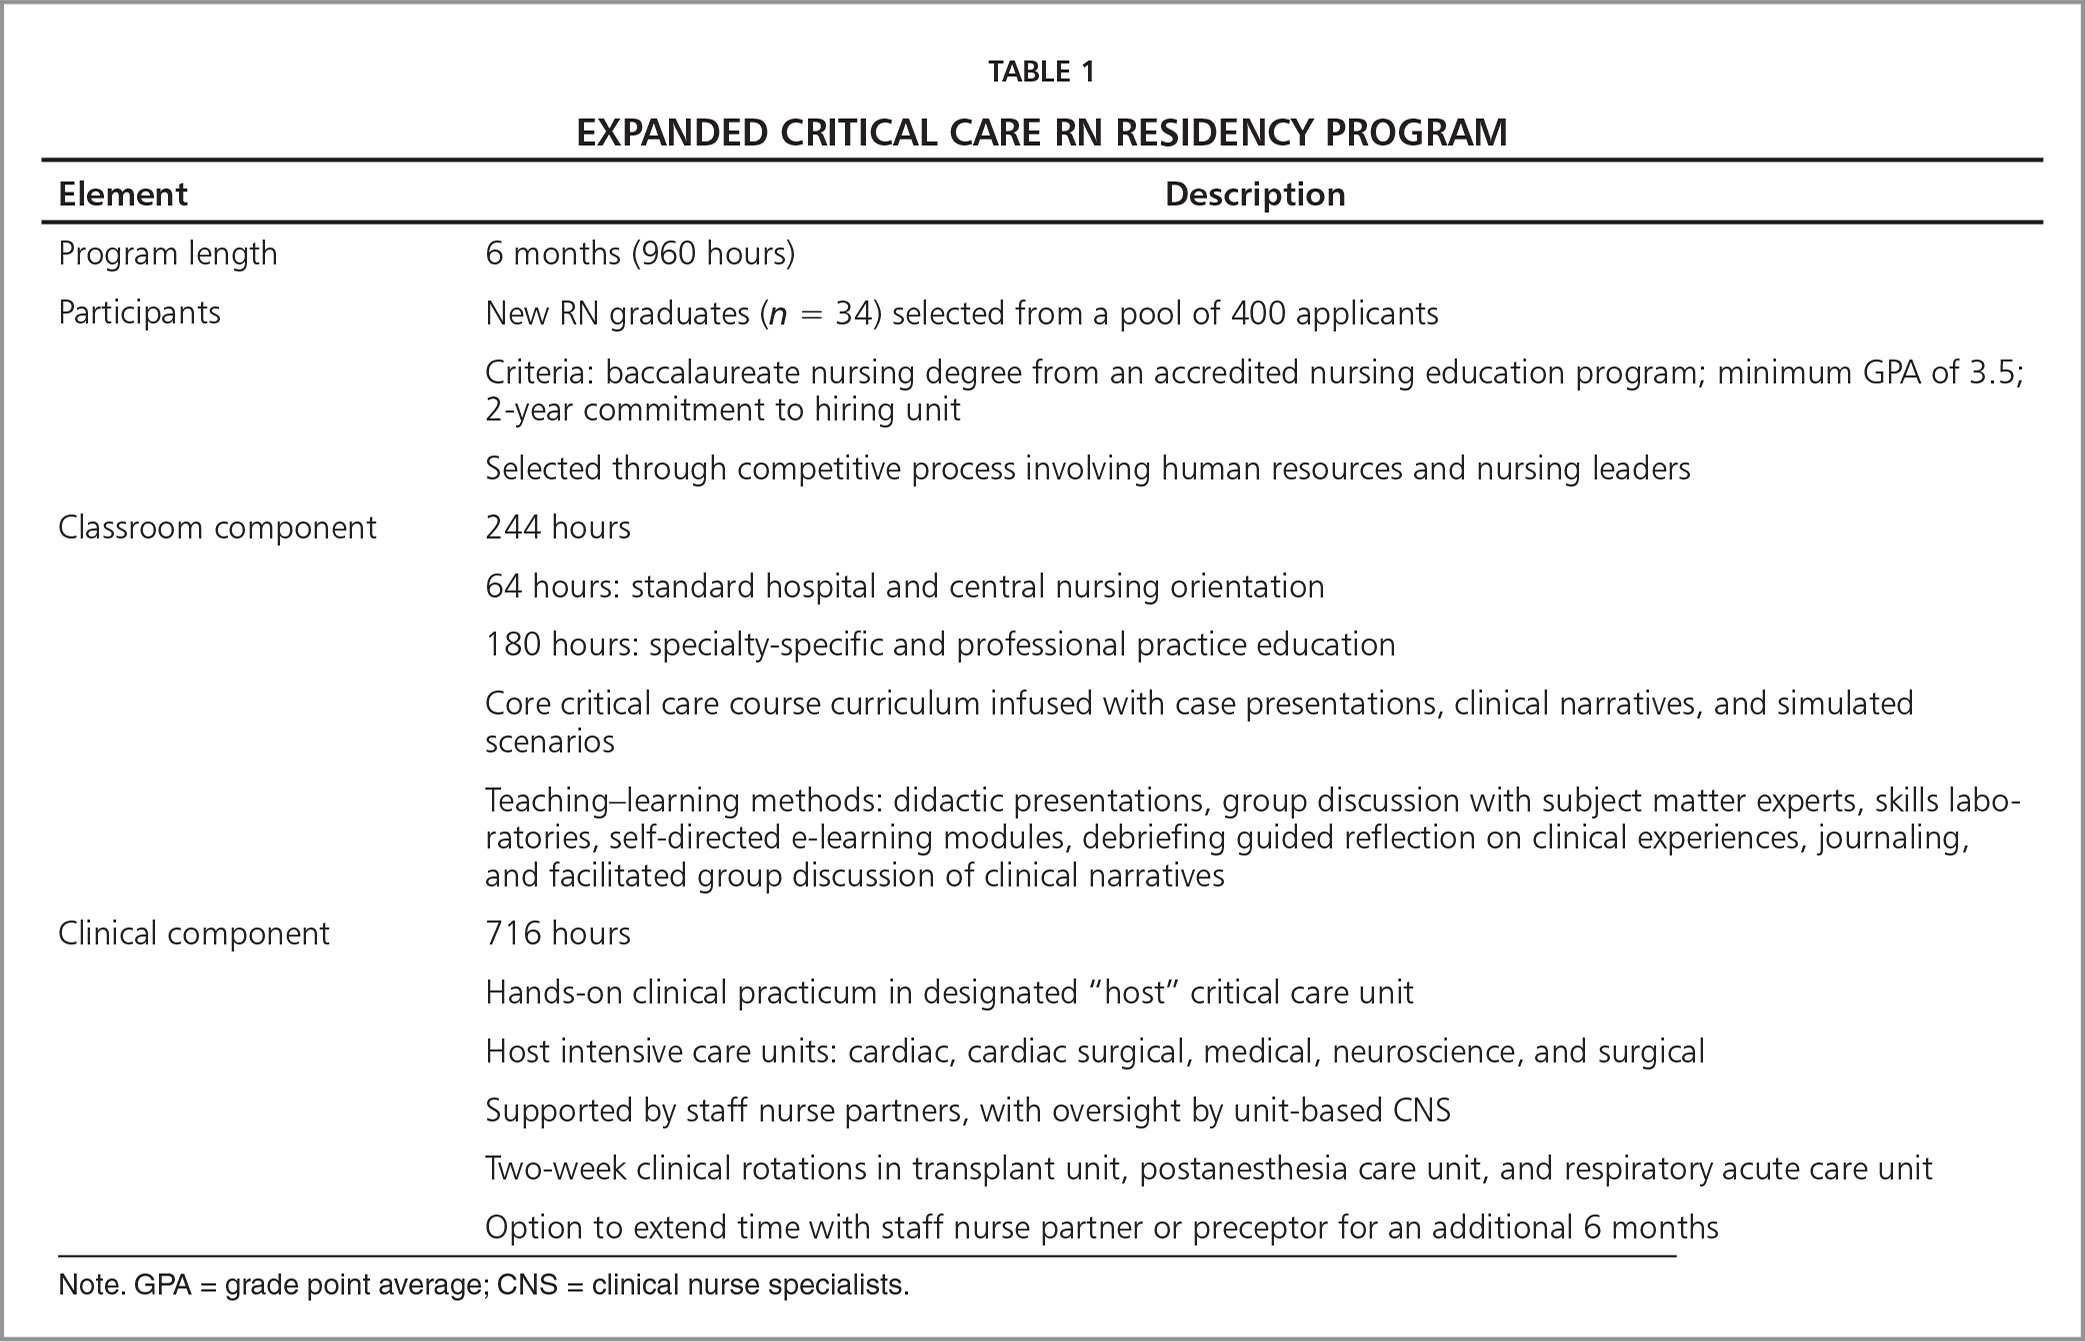 Overview of nurse residency hospital program